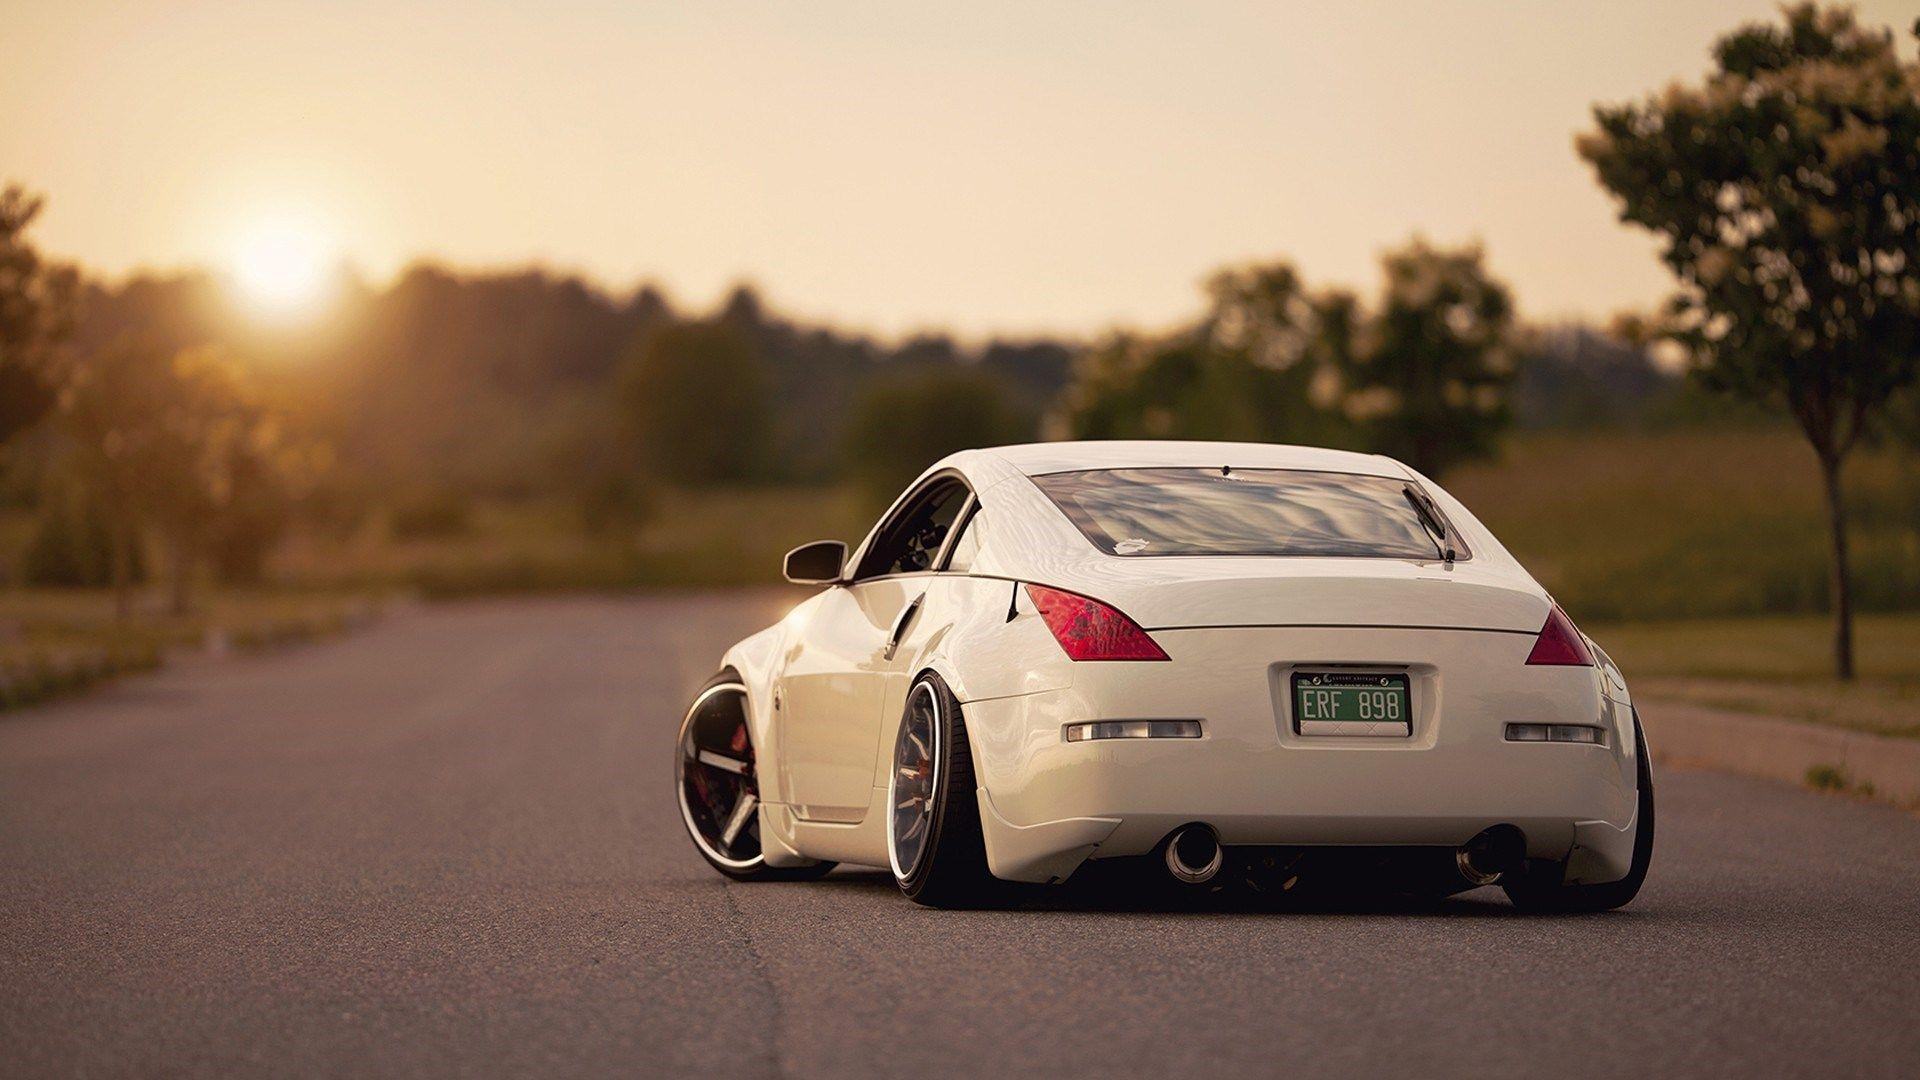 stanced nissan 350z wallpaper - photo #20